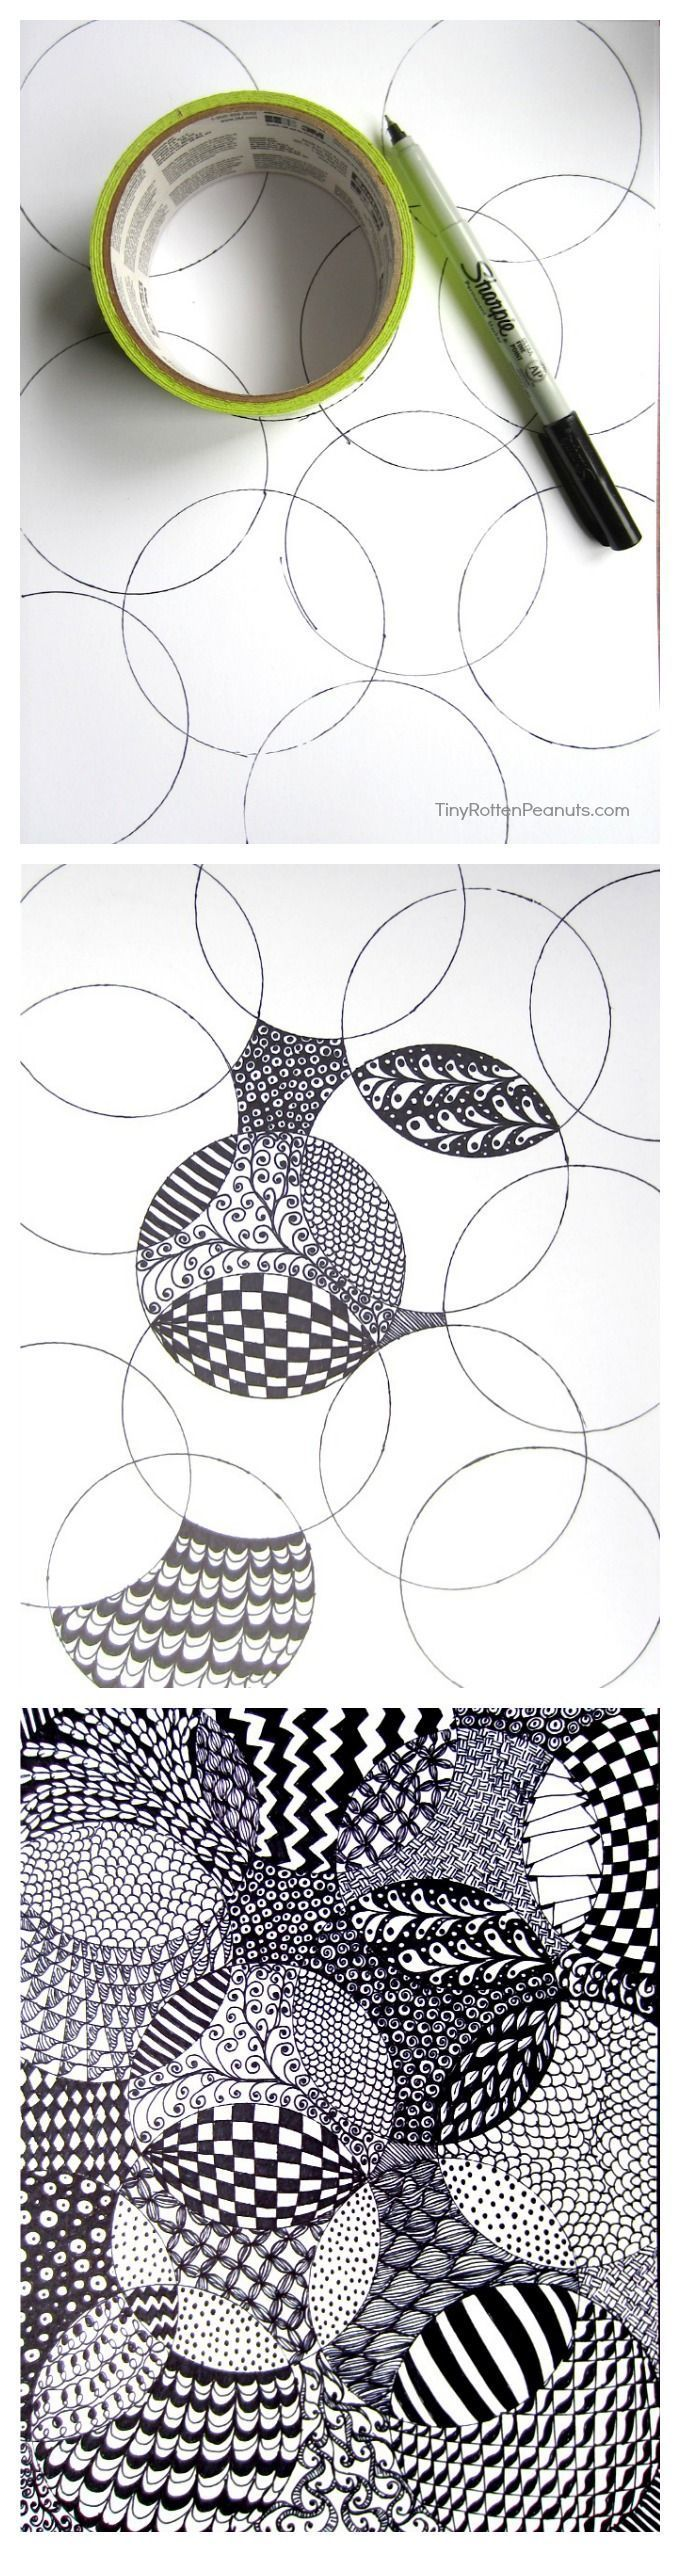 3857 best zentangles images on pinterest mandalas for Ink drawings easy